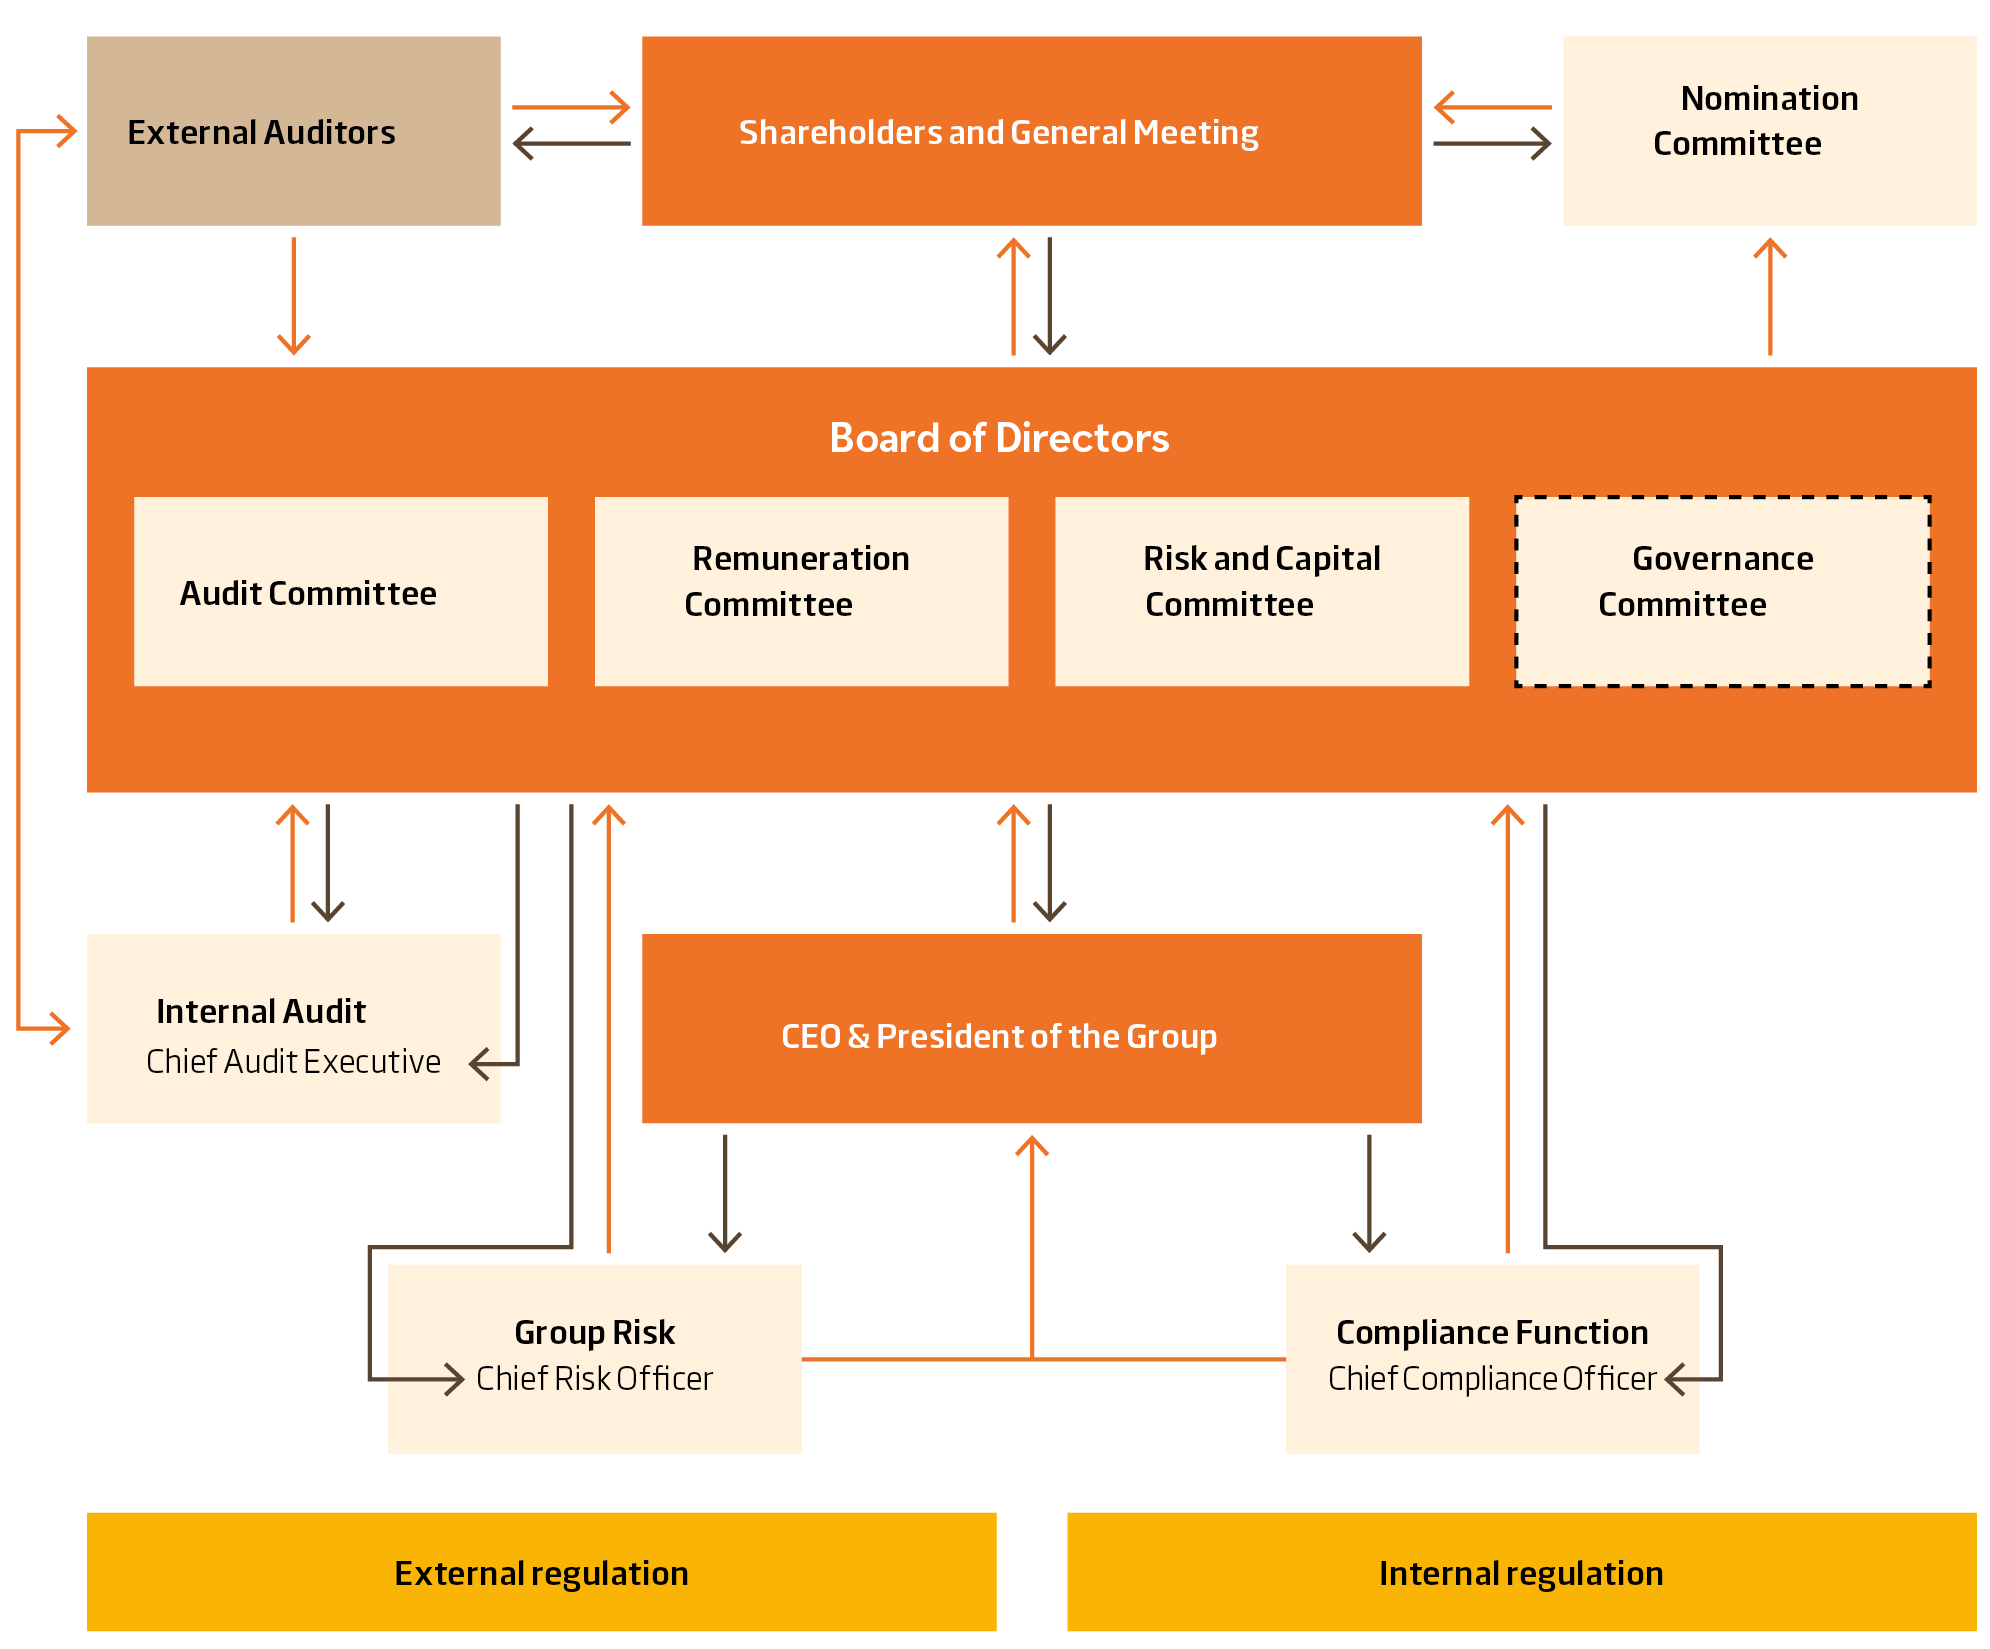 The image shows the governance structure of Swedbank.